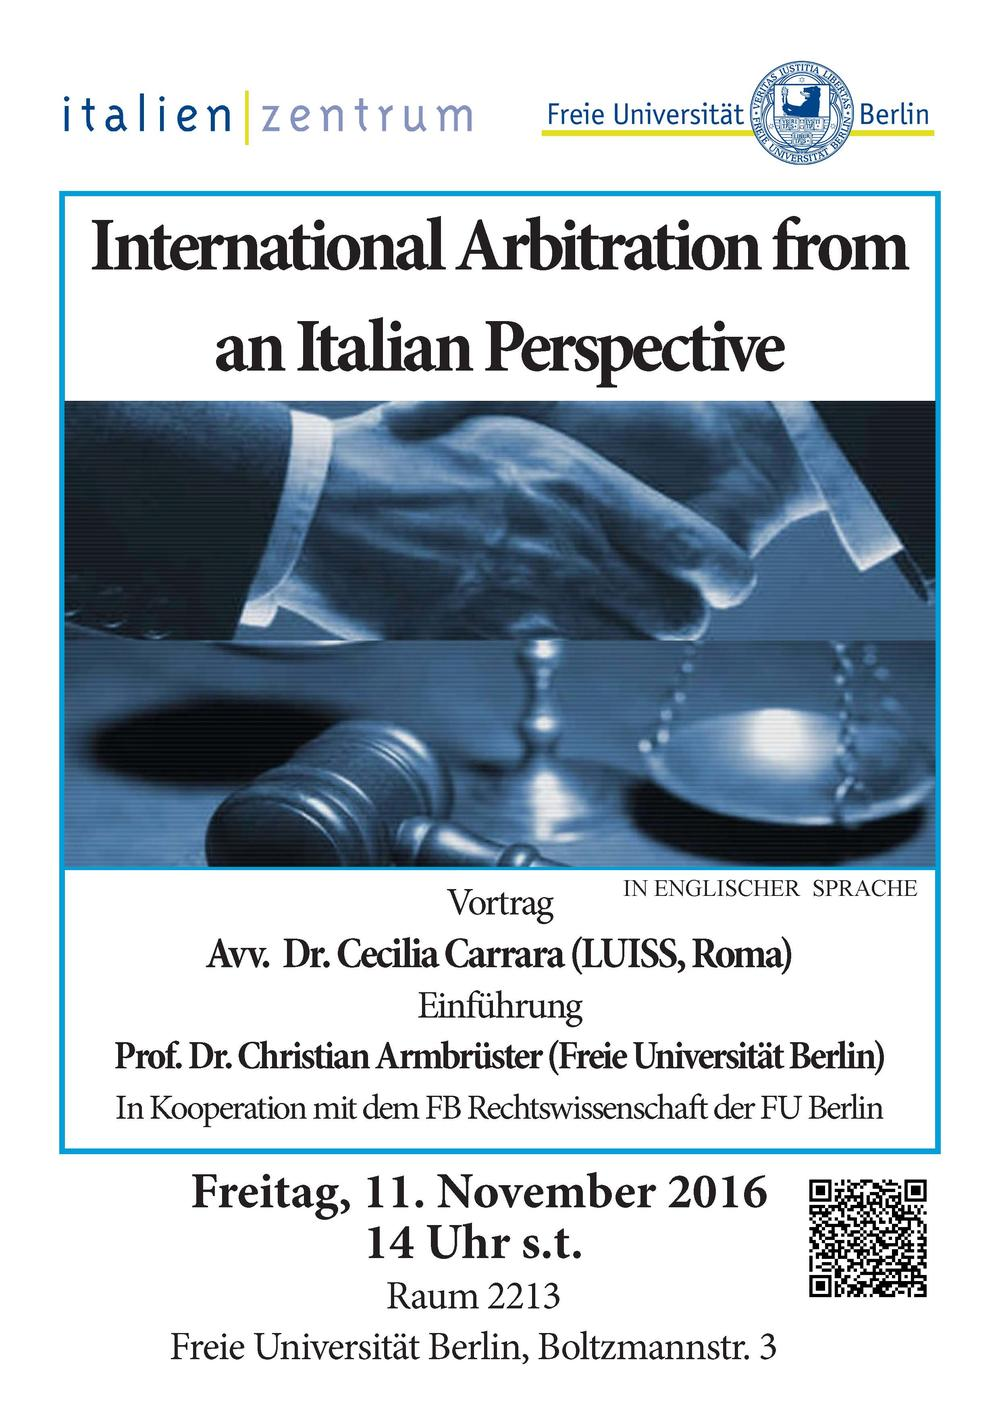 International Arbitration from an Italian Perspective